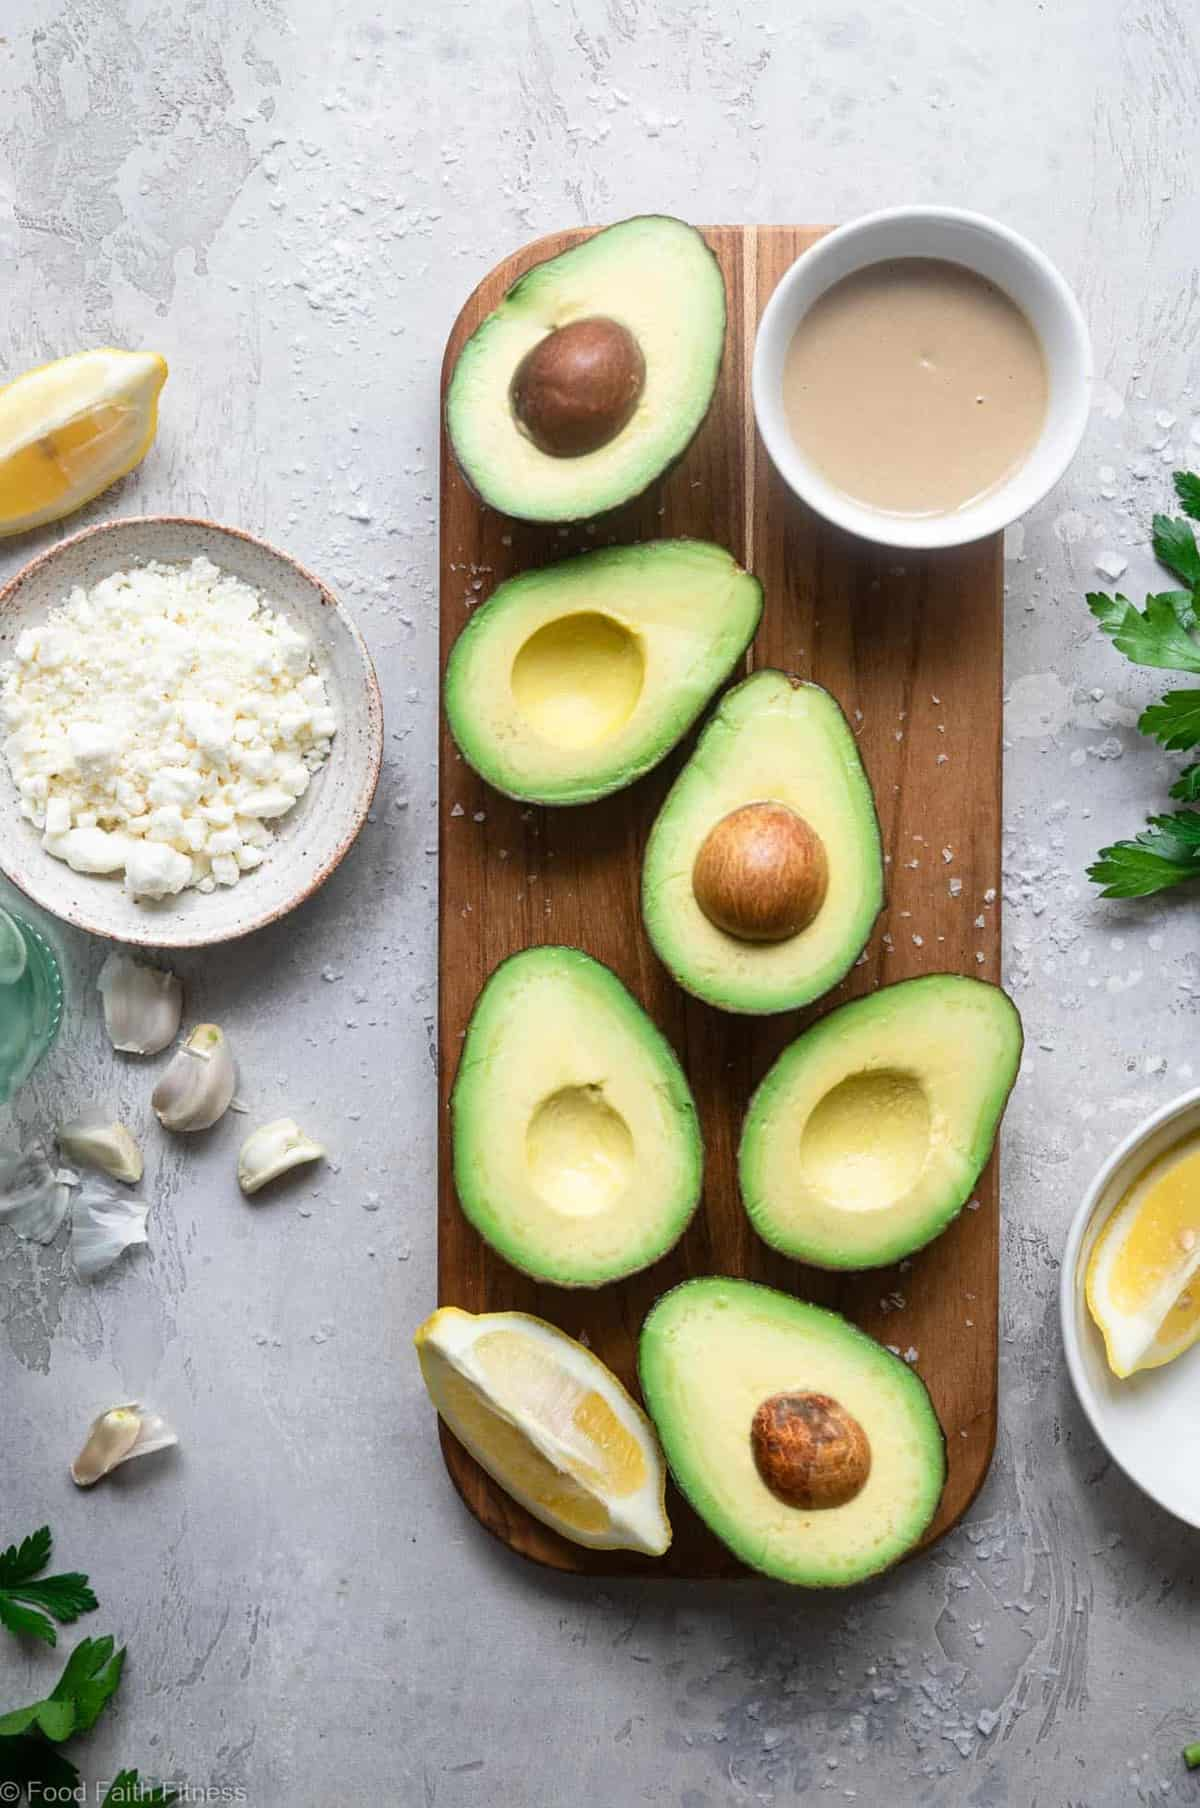 Grilled Avocado with Feta Tahini Sauce - These smoky and creamy grilled avocados are drizzled with a sweet and tangy feta and tahini sauce for an easy summer dinner that's healthy , keto, low carb and delicious! | #Foodfaithfitness |